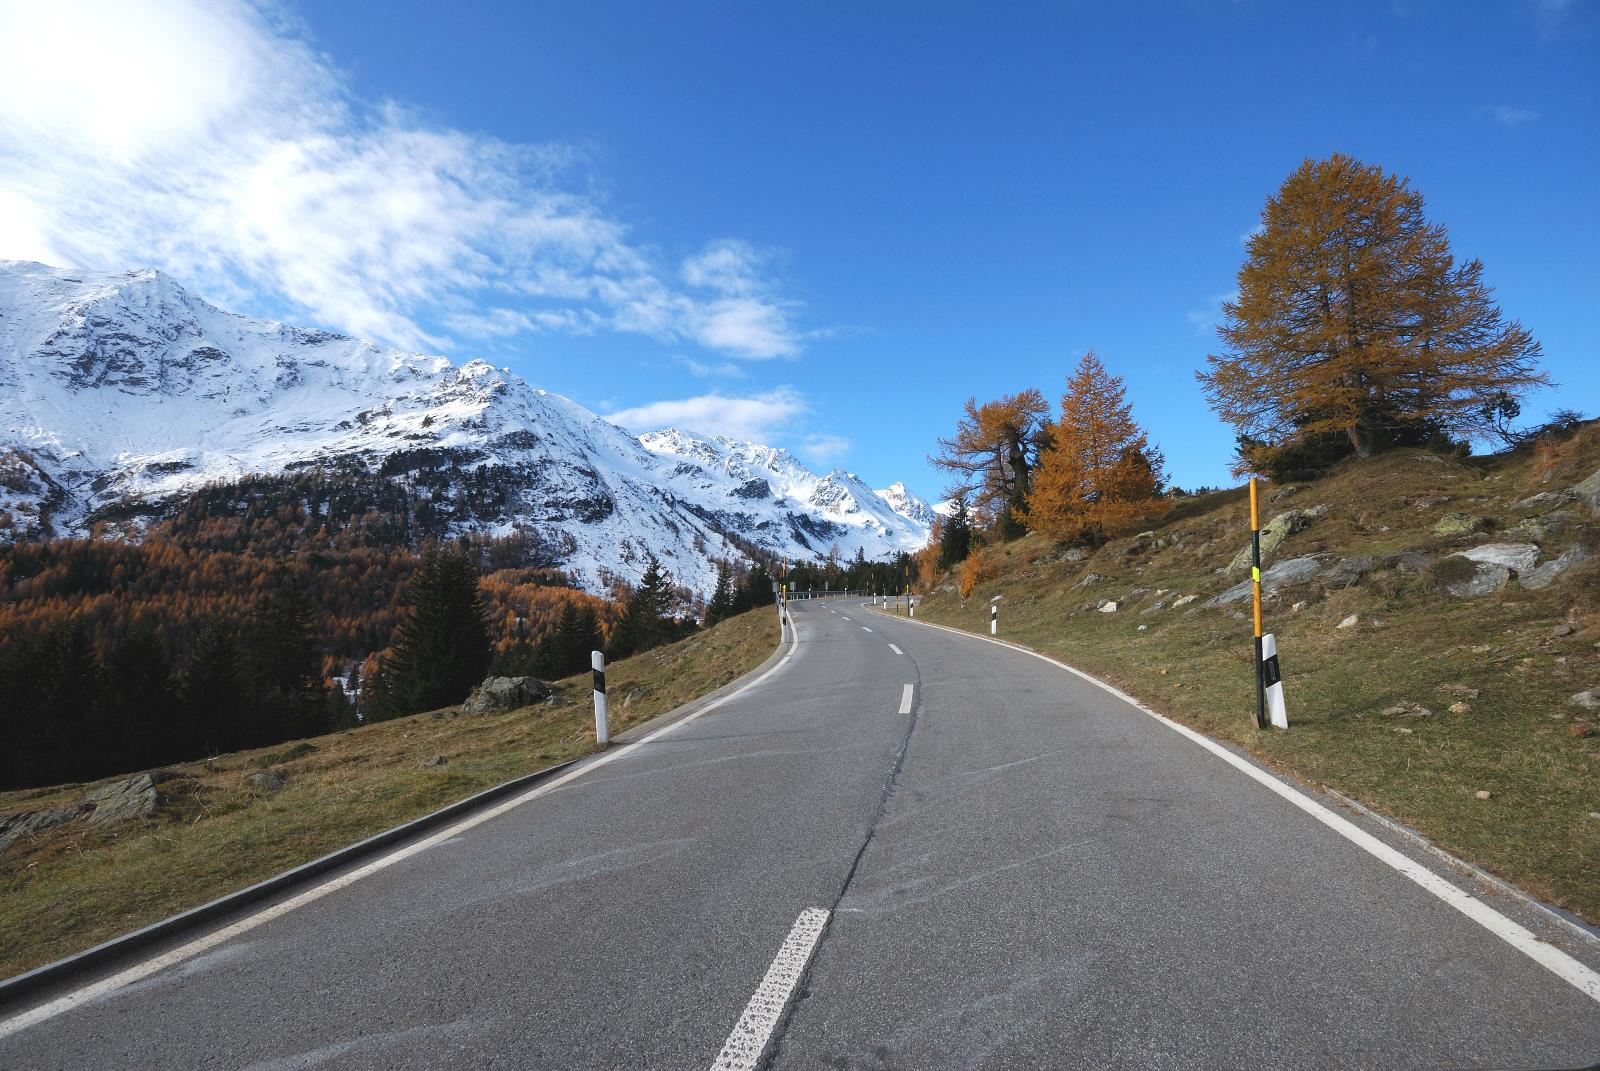 All roads lead to Ticino